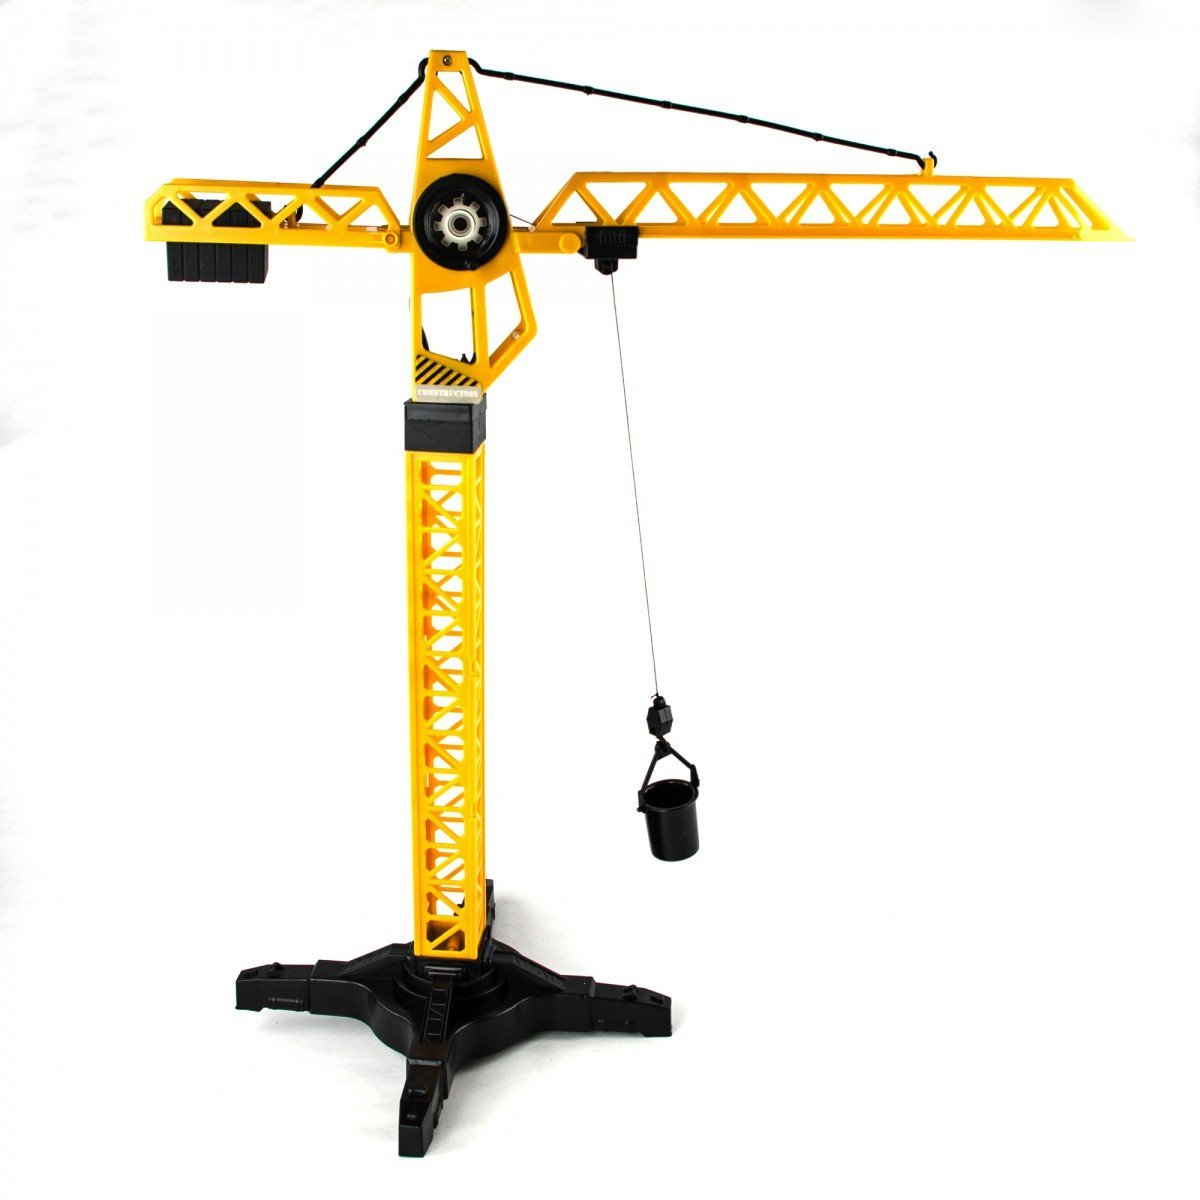 Toy Cranes For Boys : Cm manual tower crane construction toy with rotating cab